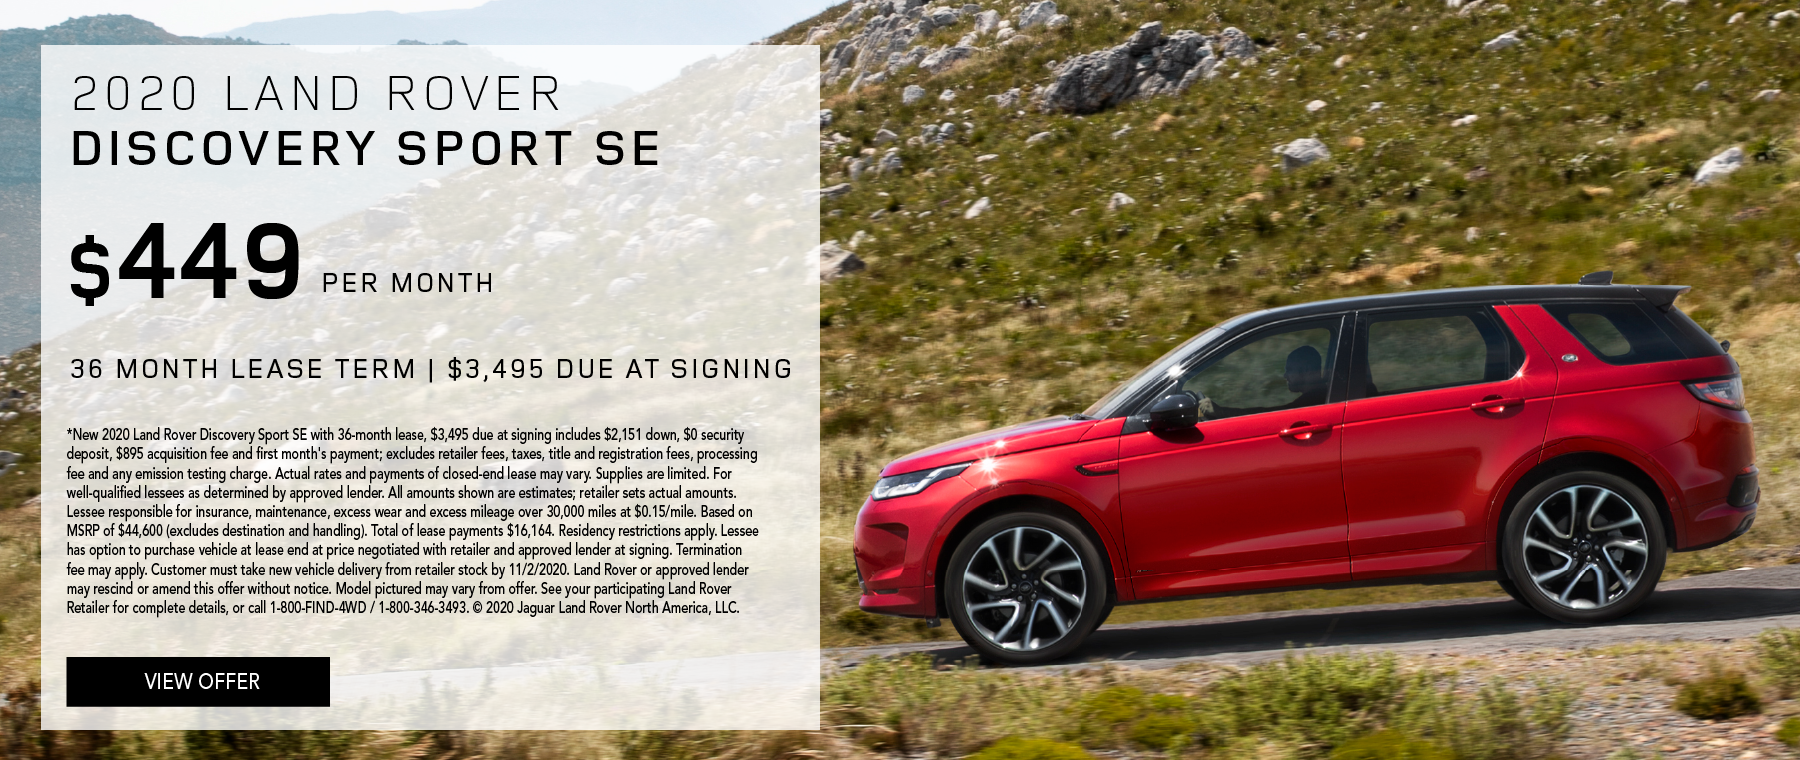 2020 LAND ROVER DISCOVERY SPORT SE. $449 PER MONTH. 36 MONTH LEASE TERM. $3,495 CASH DUE AT SIGNING. $0 SECURITY DEPOSIT. 10,000 MILES PER YEAR. EXCLUDES RETAILER FEES, TAXES, TITLE AND REGISTRATION FEES, PROCESSING FEE AND ANY EMISSION TESTING CHARGE. ENDS 11/2/2020.